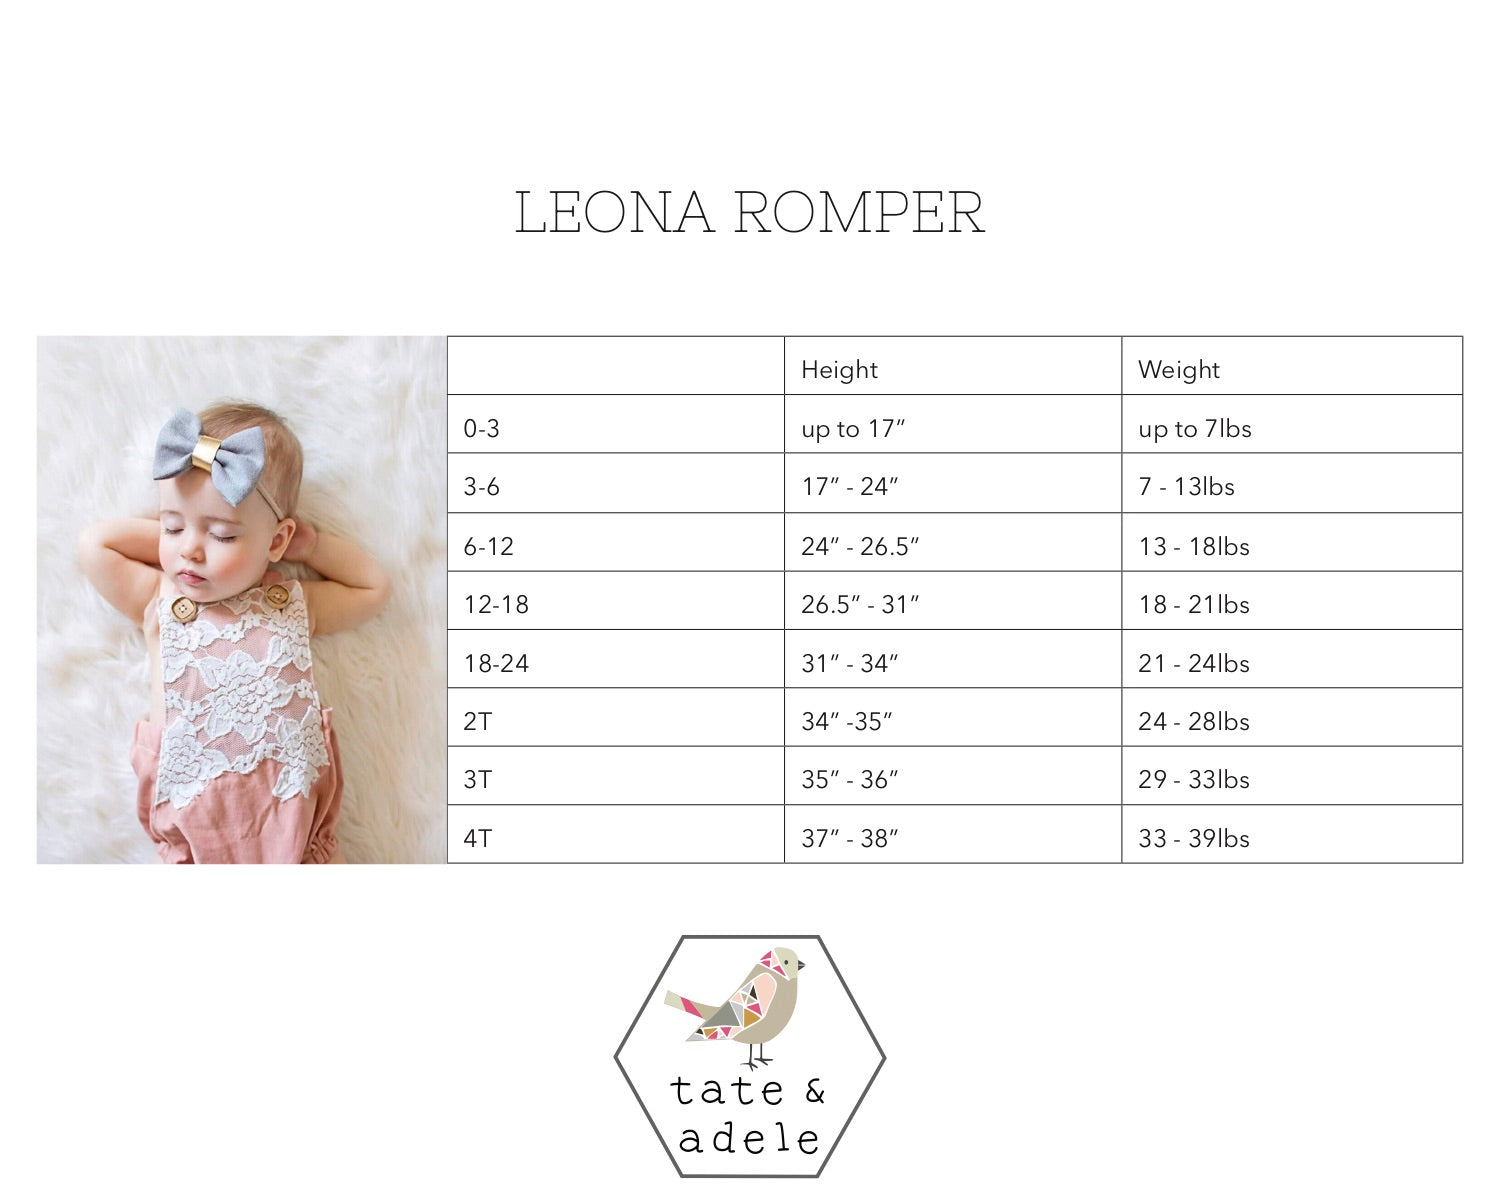 The Leona Romper by Tate & Adele